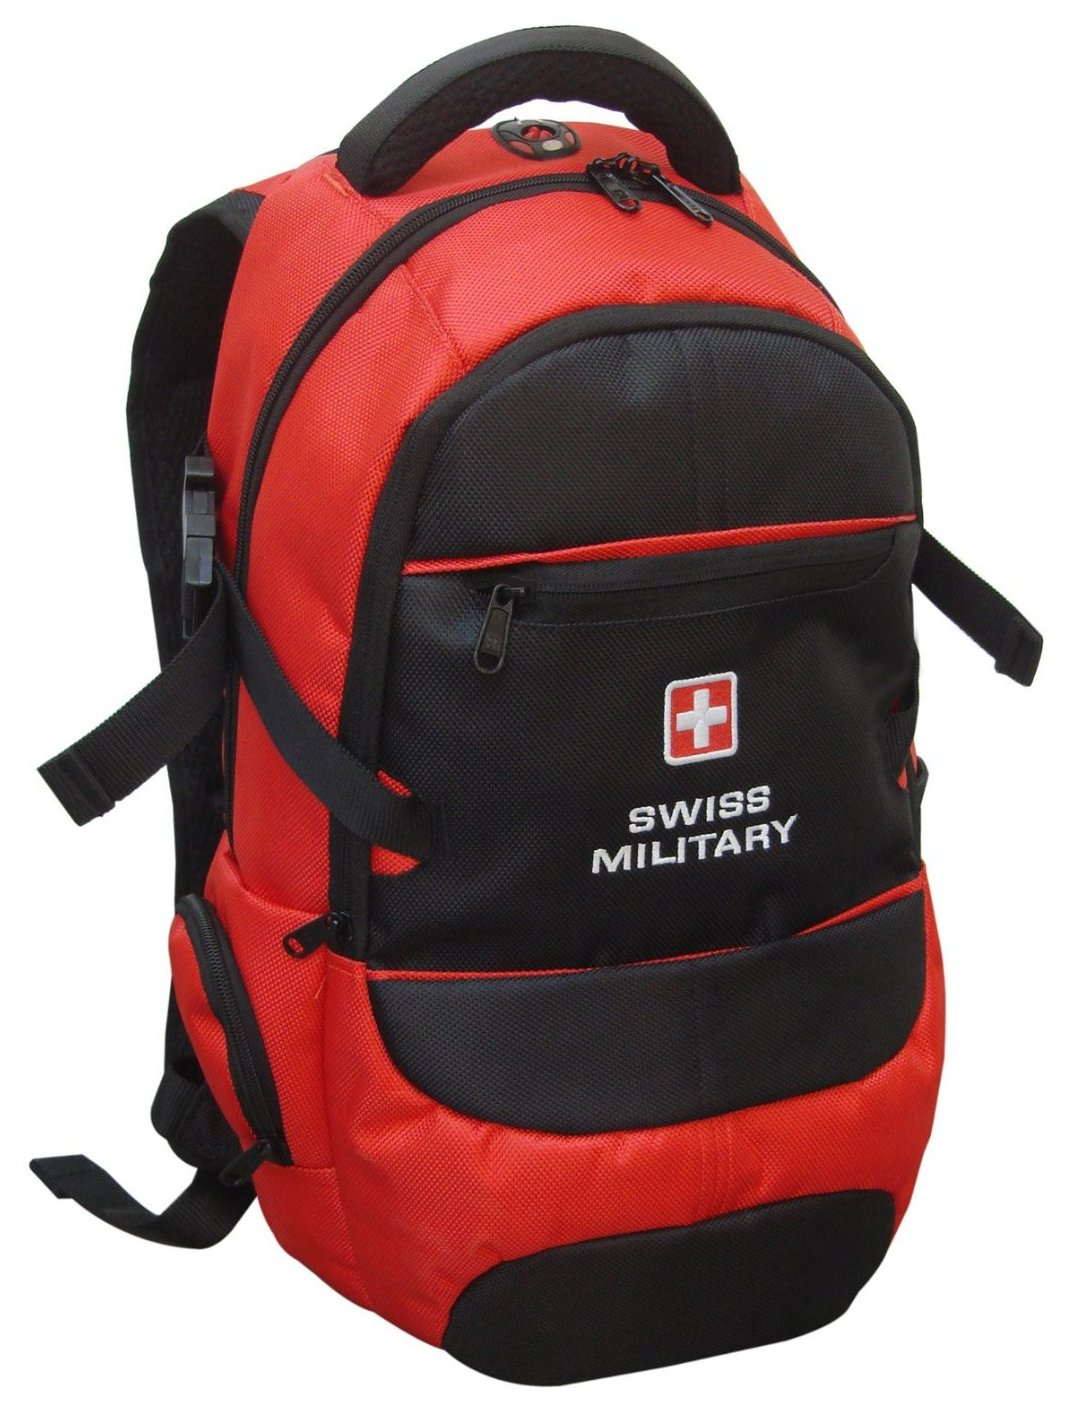 Swiss Military Laptop Backpack Bag in Bangalore